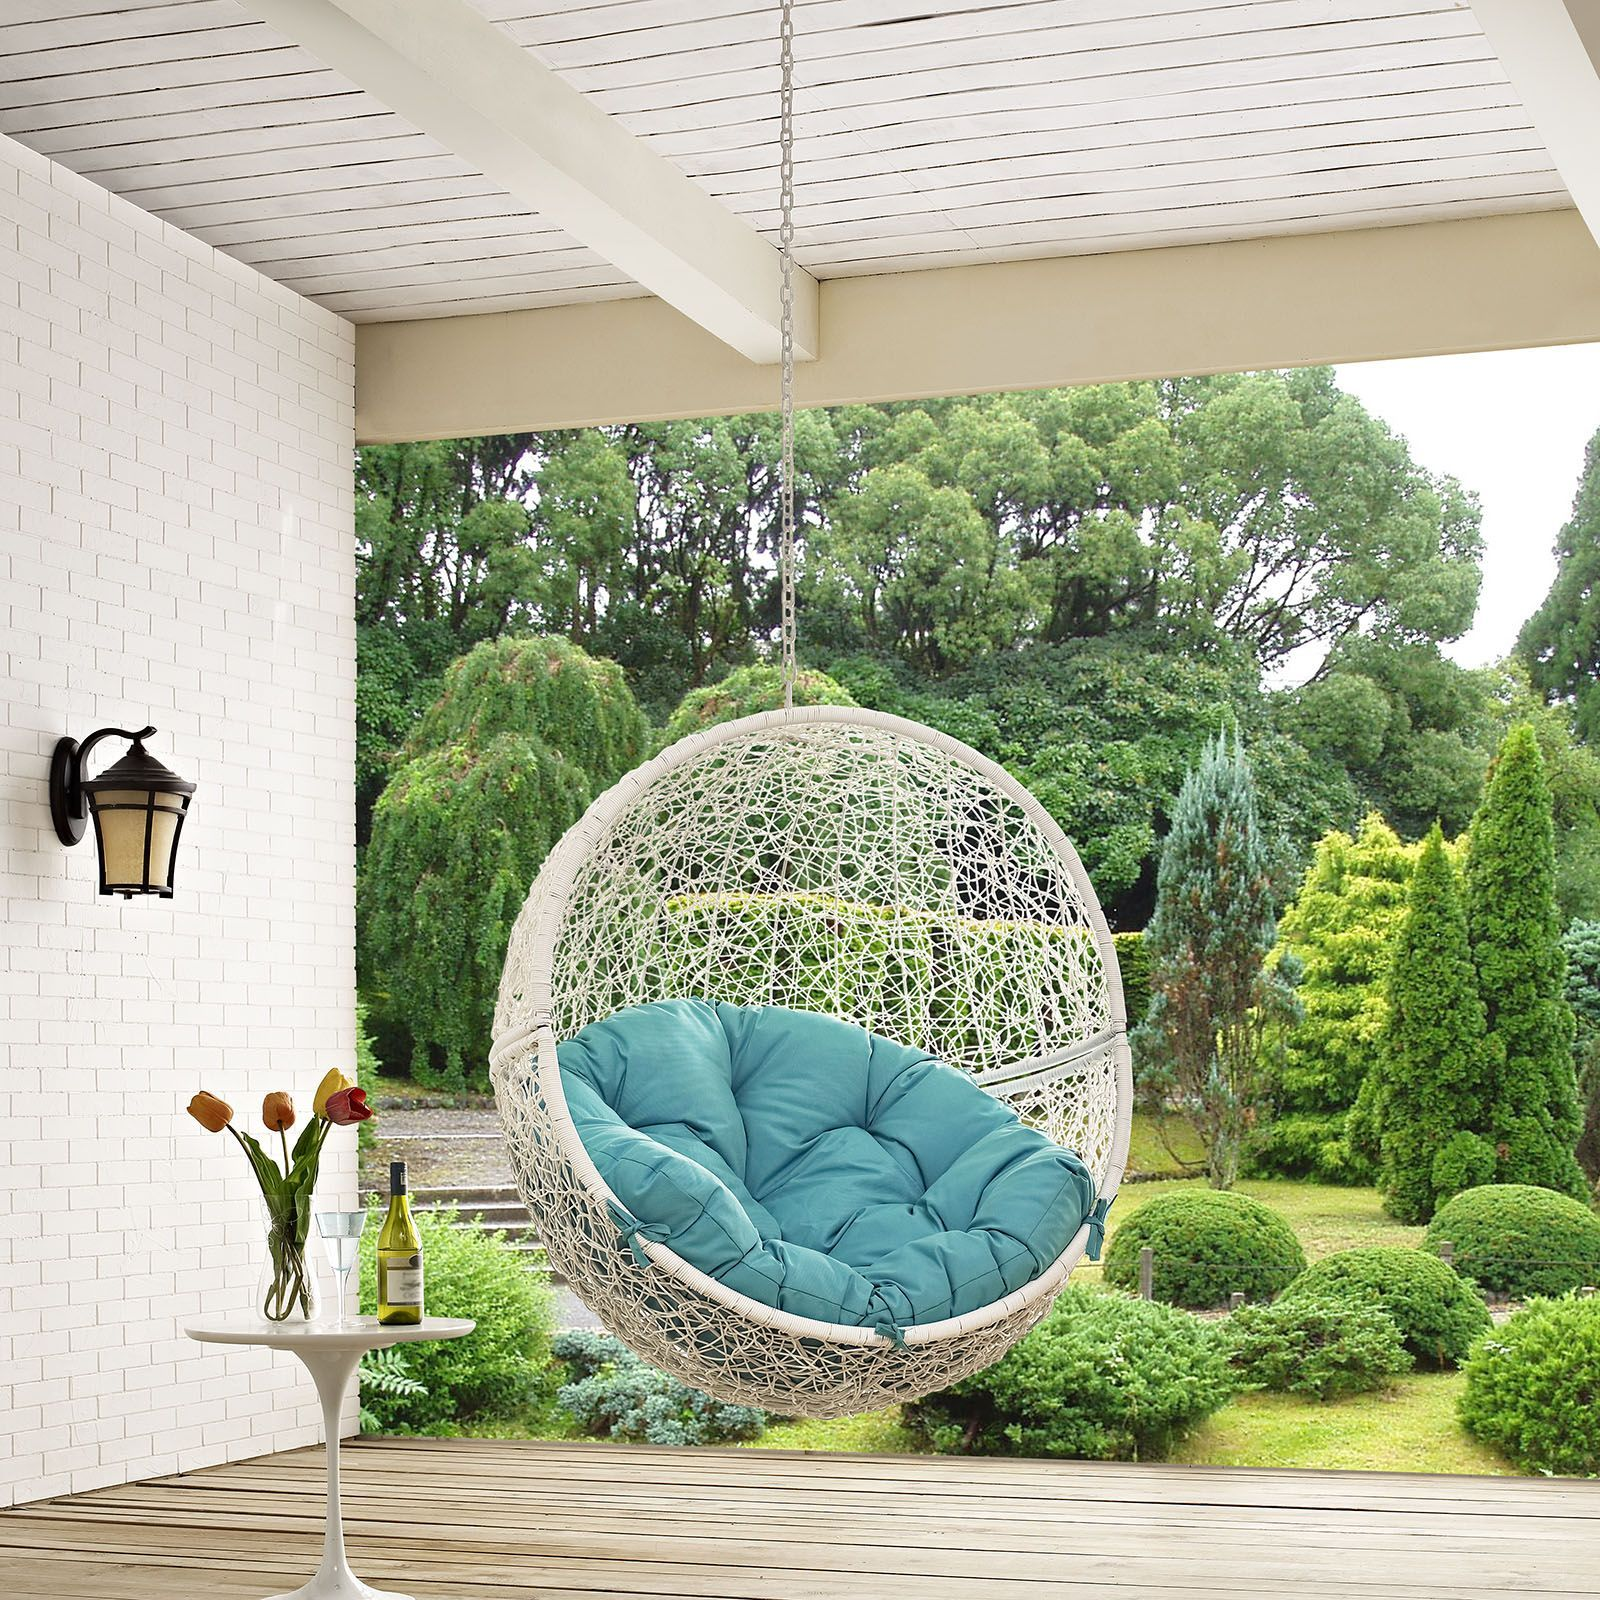 Hide outdoor patio swing chair without stand outdoor patio swing